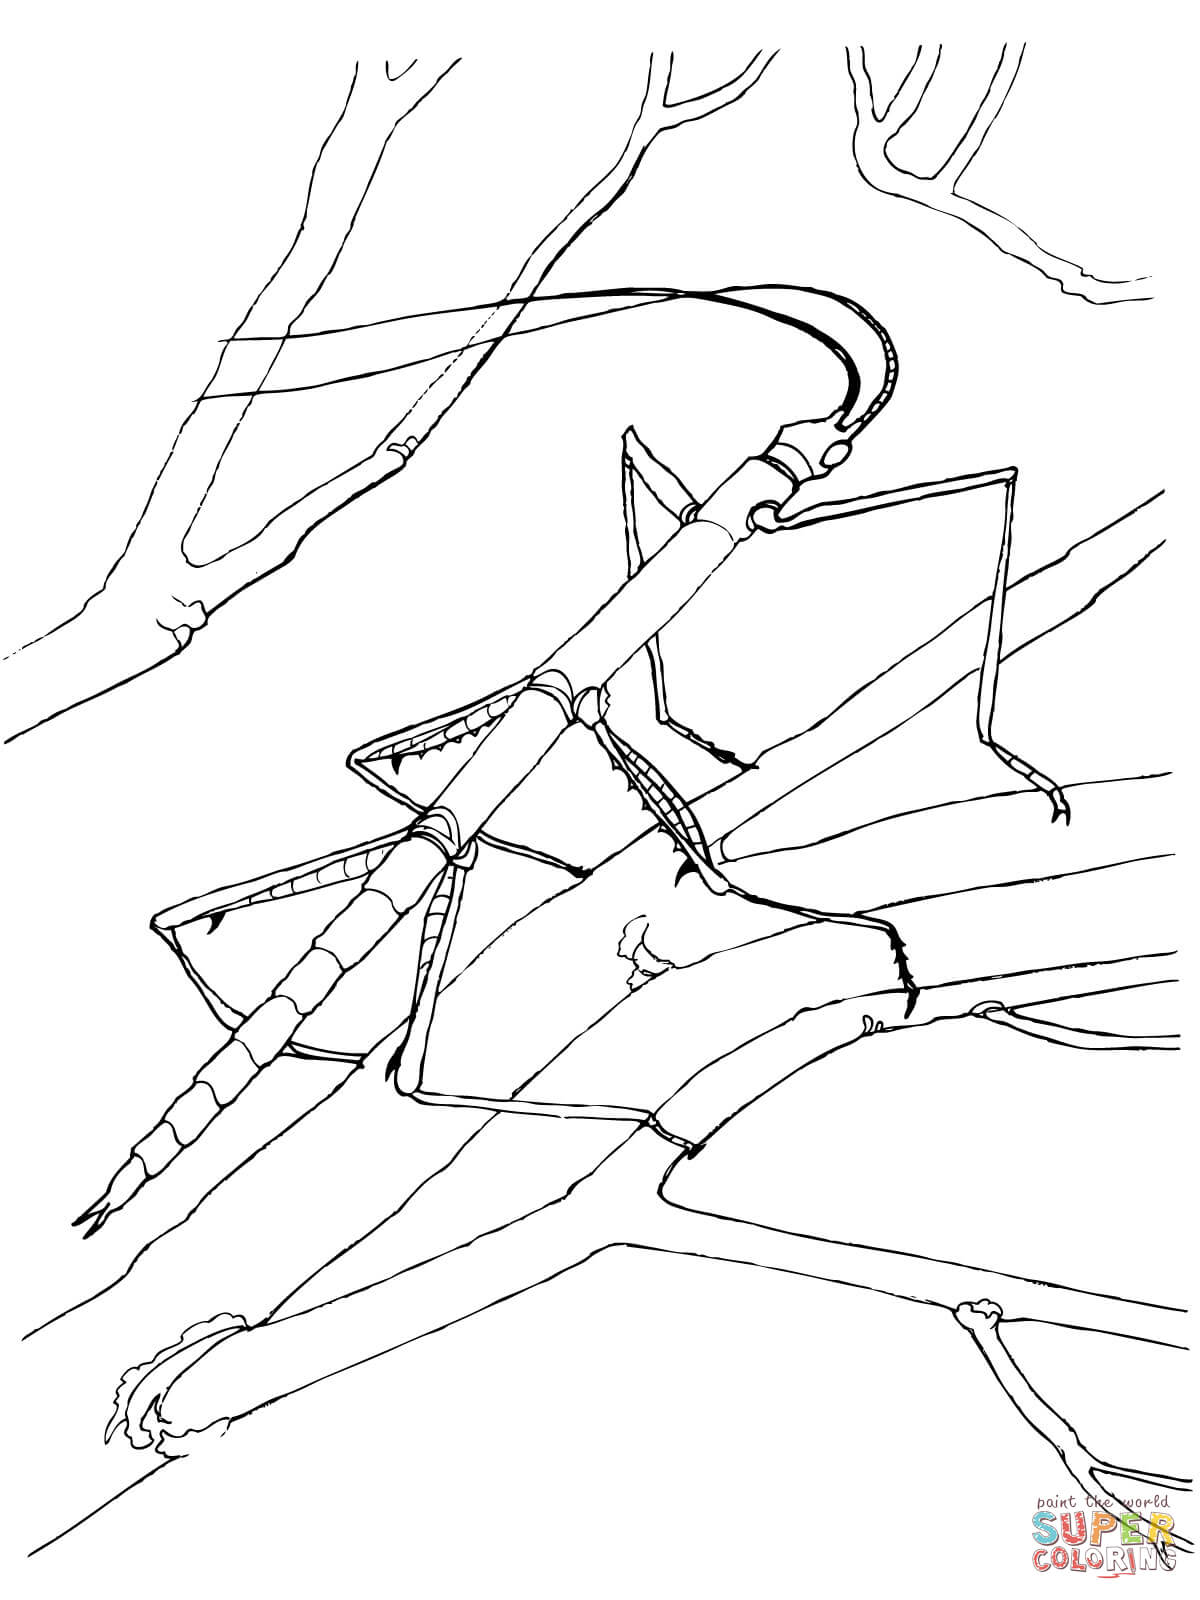 Bug clipart walking stick. Coloring page free printable